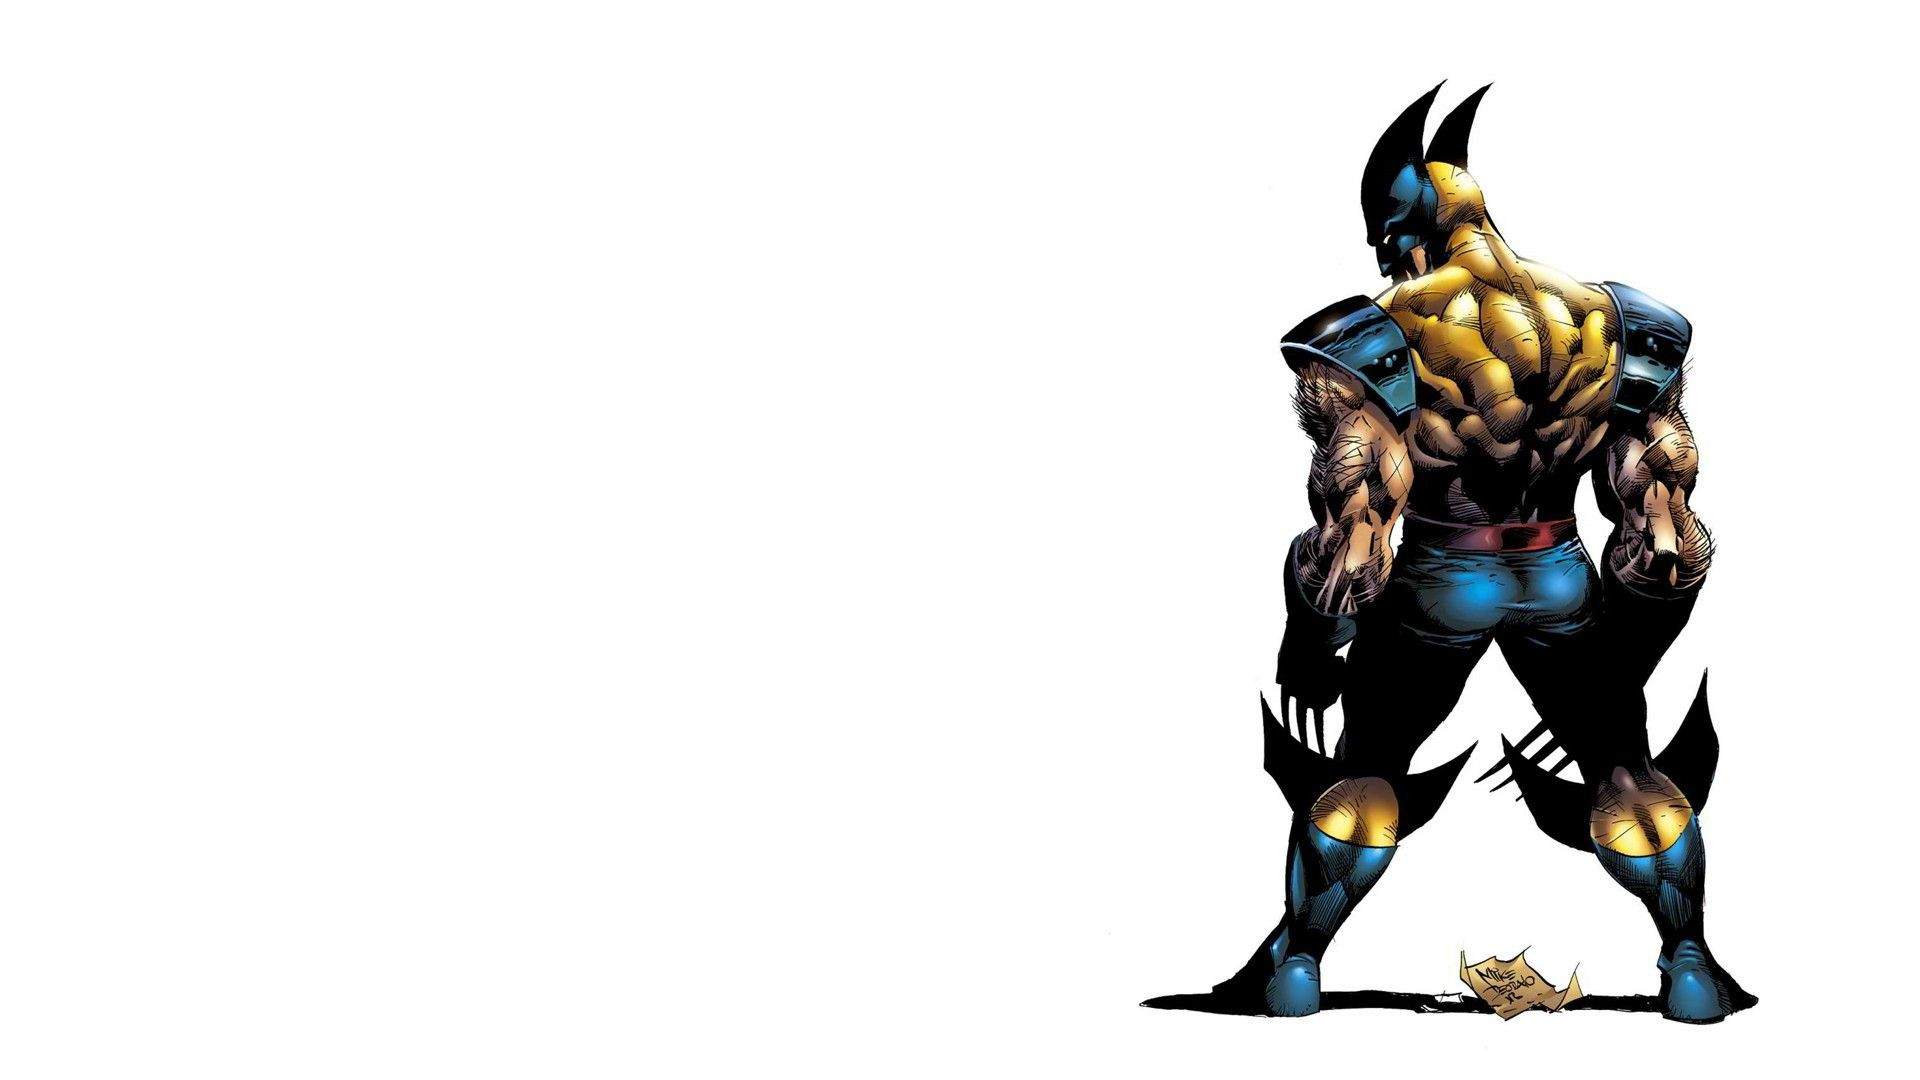 Wolverine wallpaper hd 77 images 1920x1080 wolverine wallpaper marvel wallpaper wolverine pinterest wallpaper and illustrations voltagebd Images